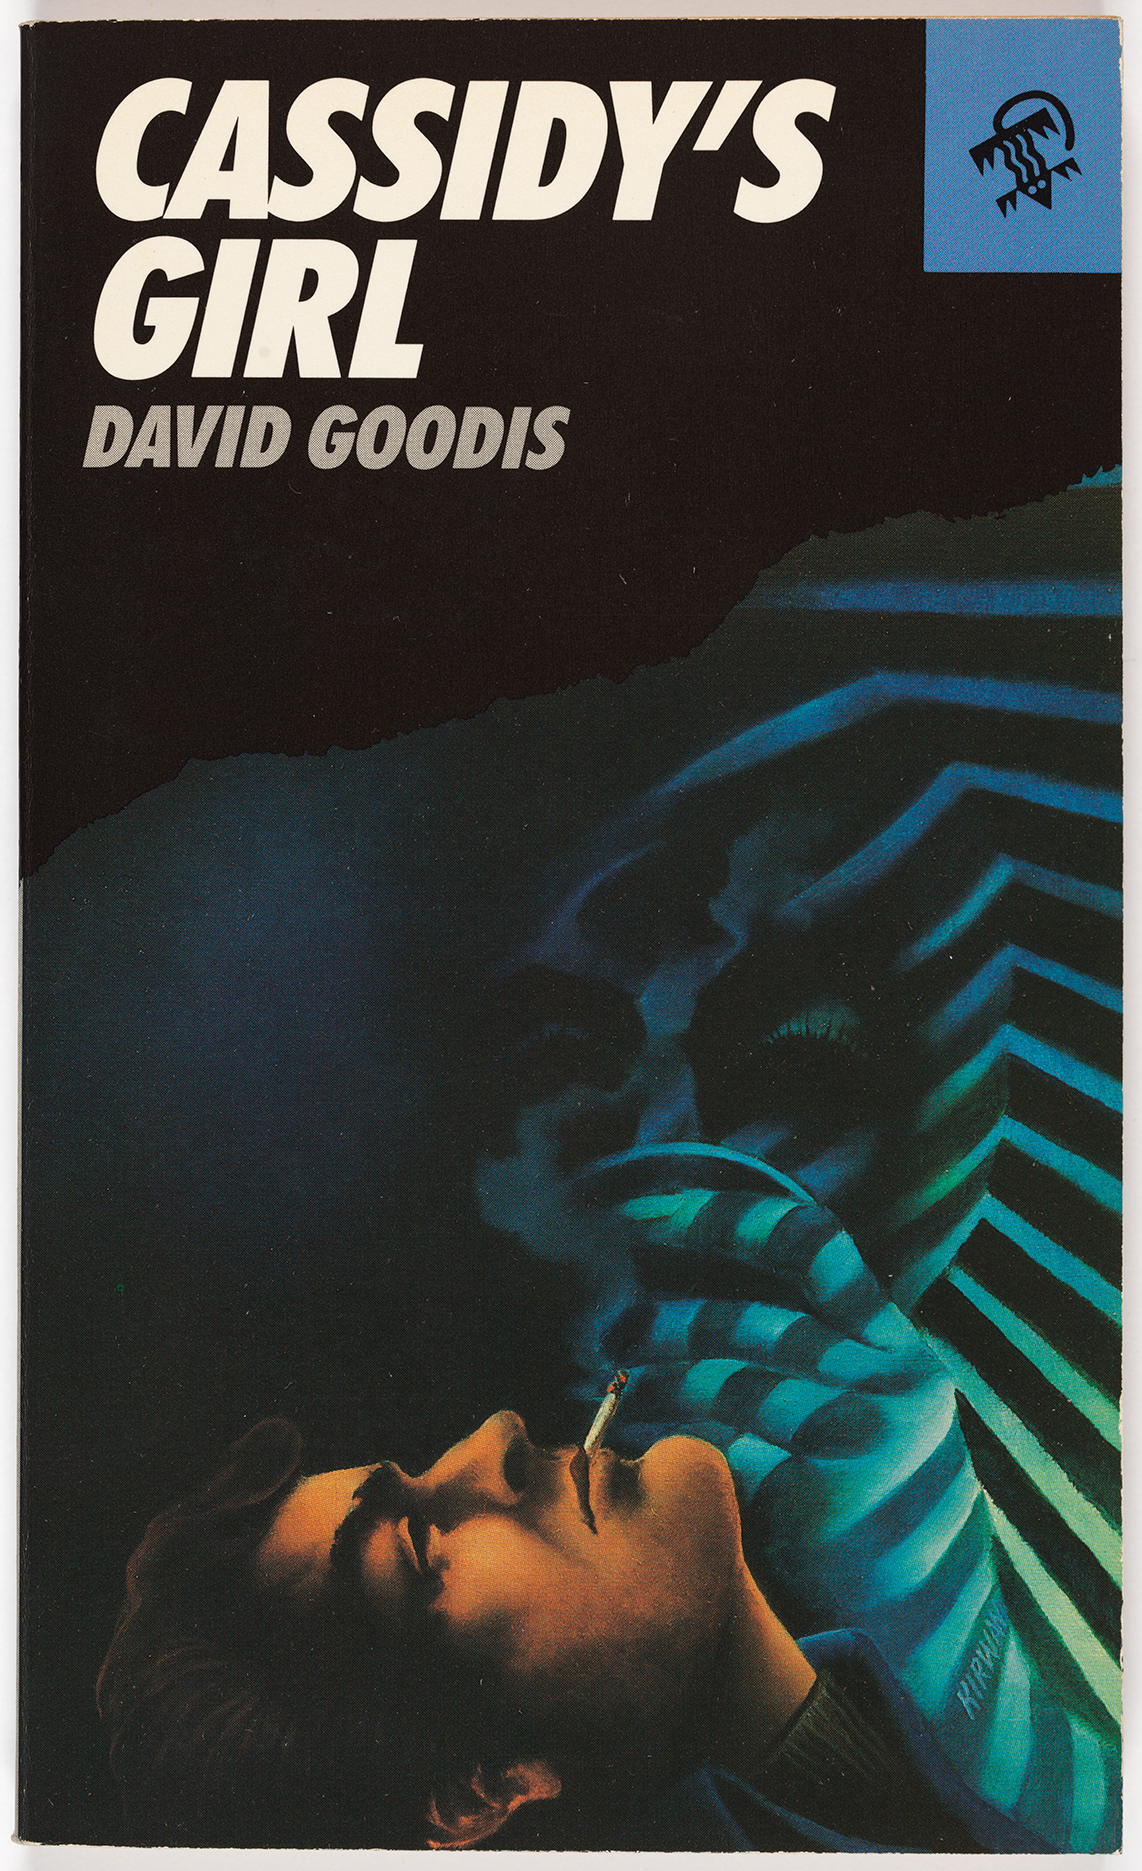 This novel by David Goodis shows a dark-haired man smoking, with just a side profile of his face visible at the bottom of the front cover. Above him, an abstract face and hand emerge from a striped dark blue fabric.